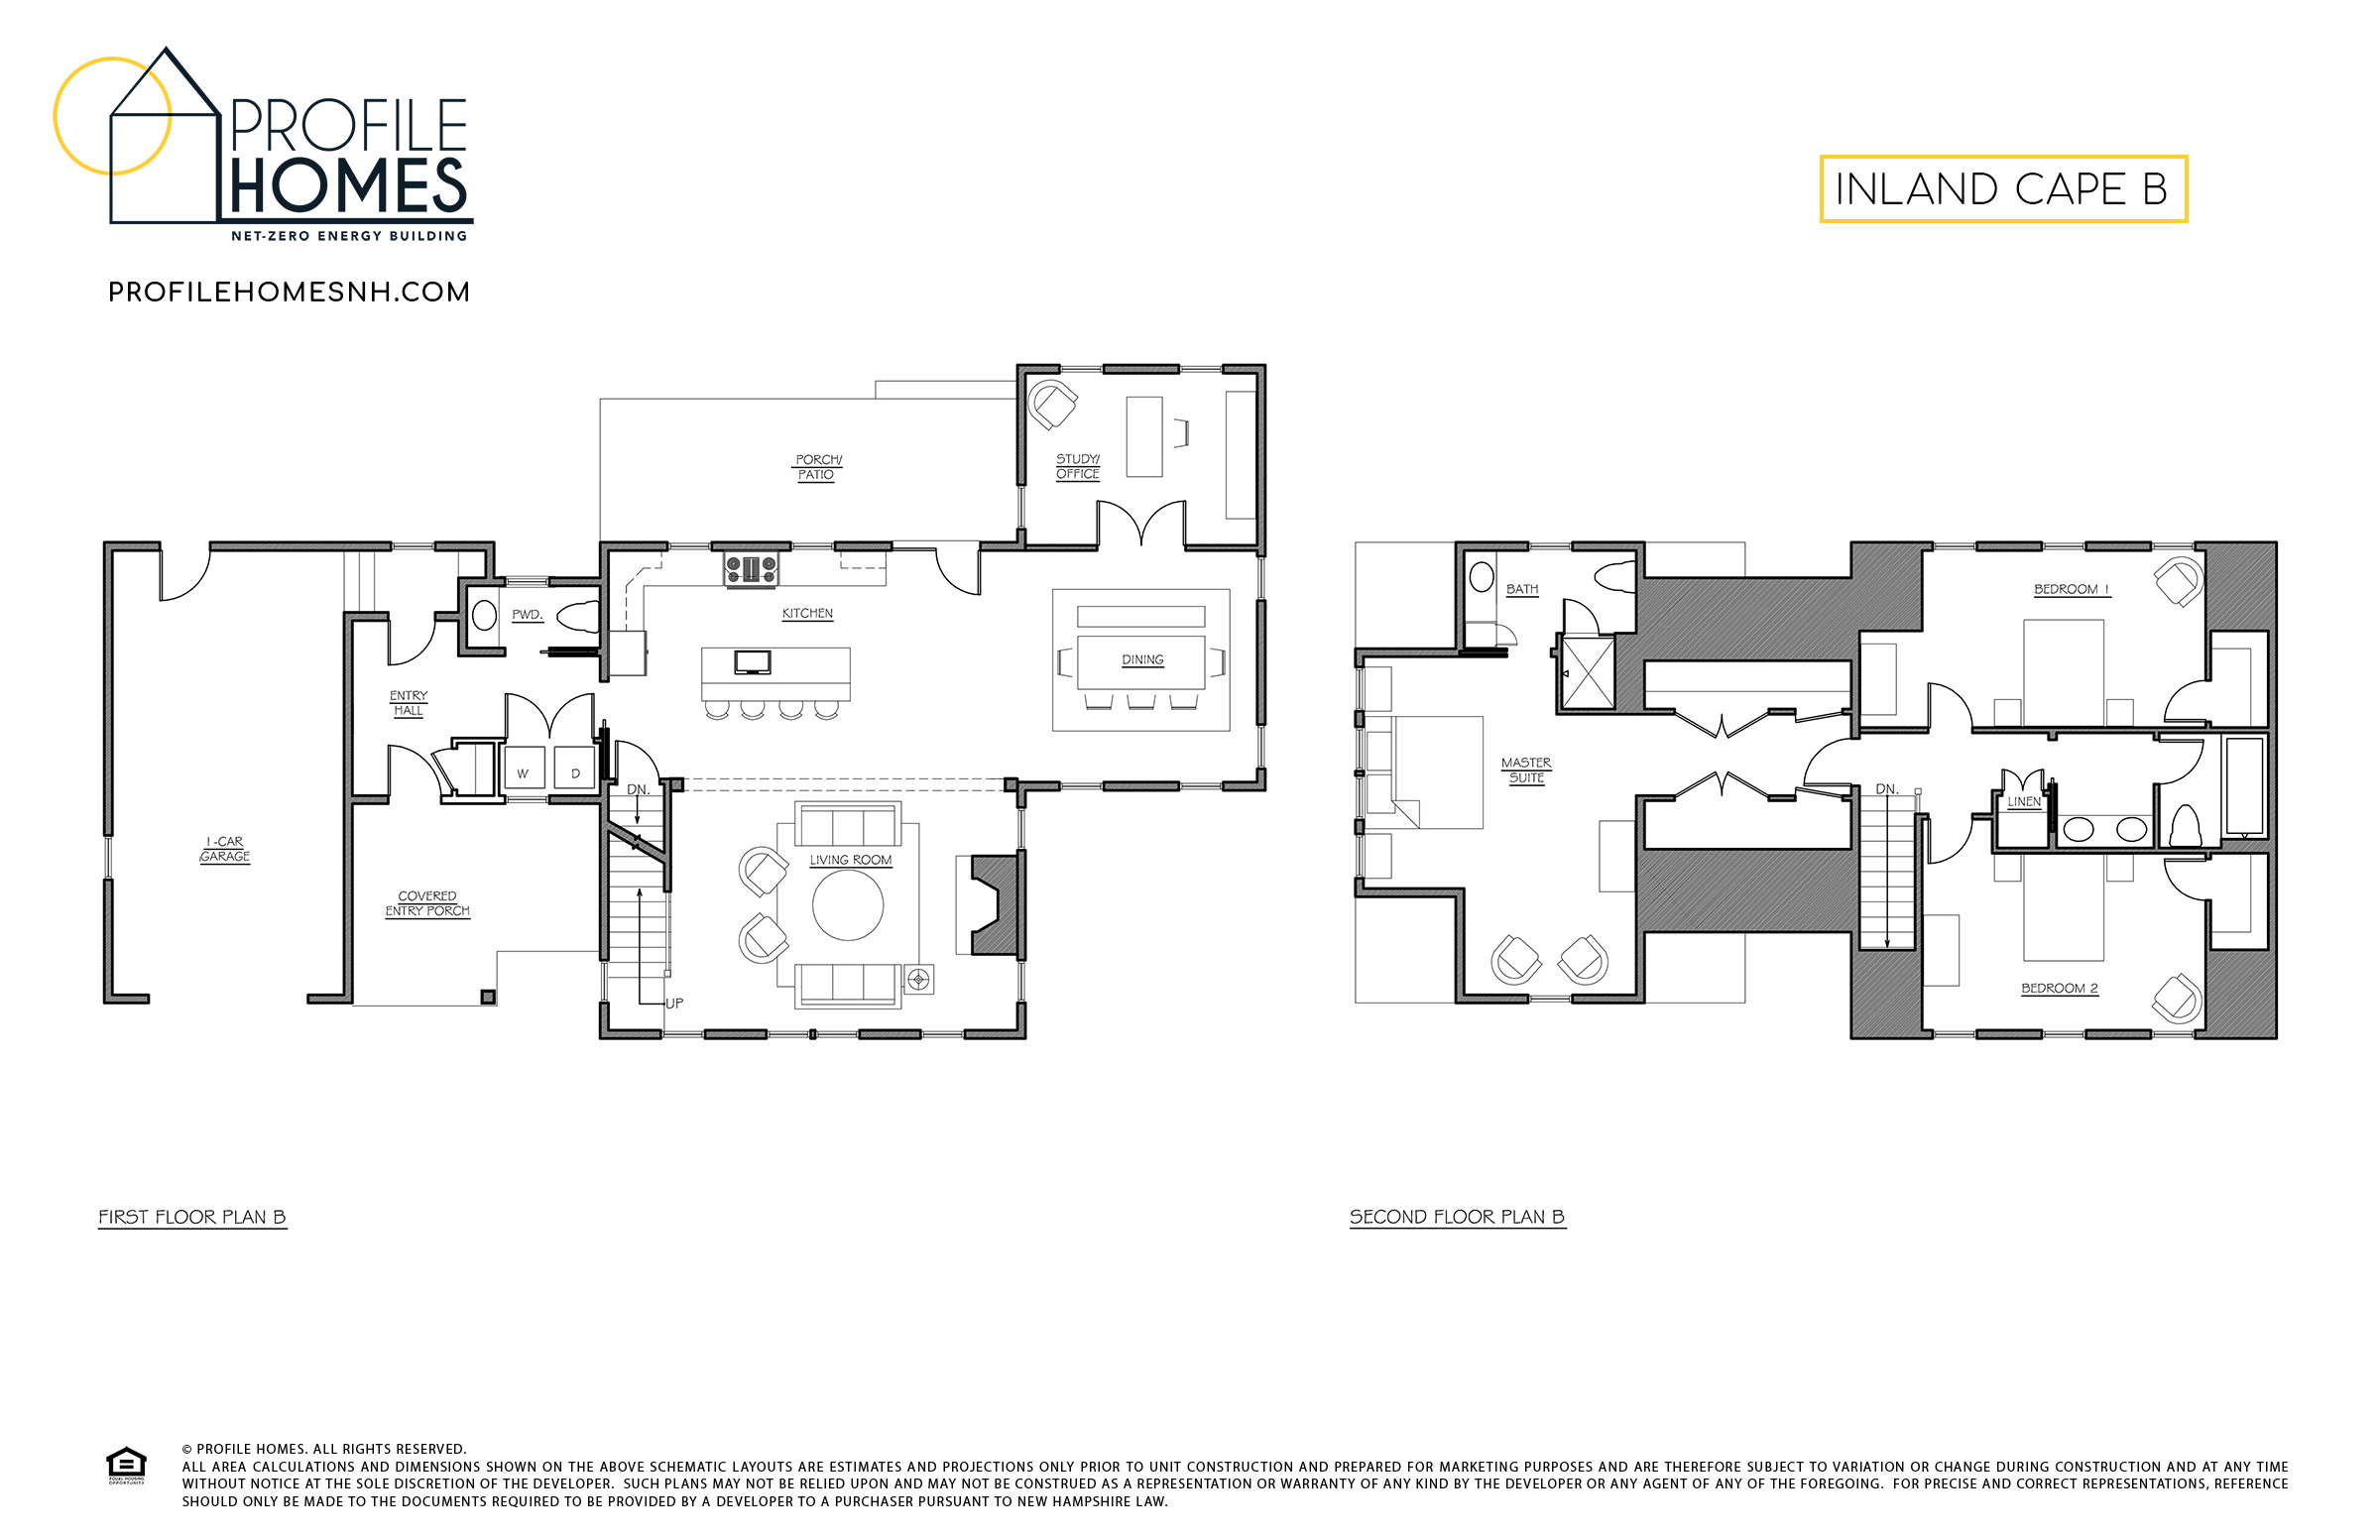 Profile Homes Floorplan Inland Cape B © 2018 Profile Homes